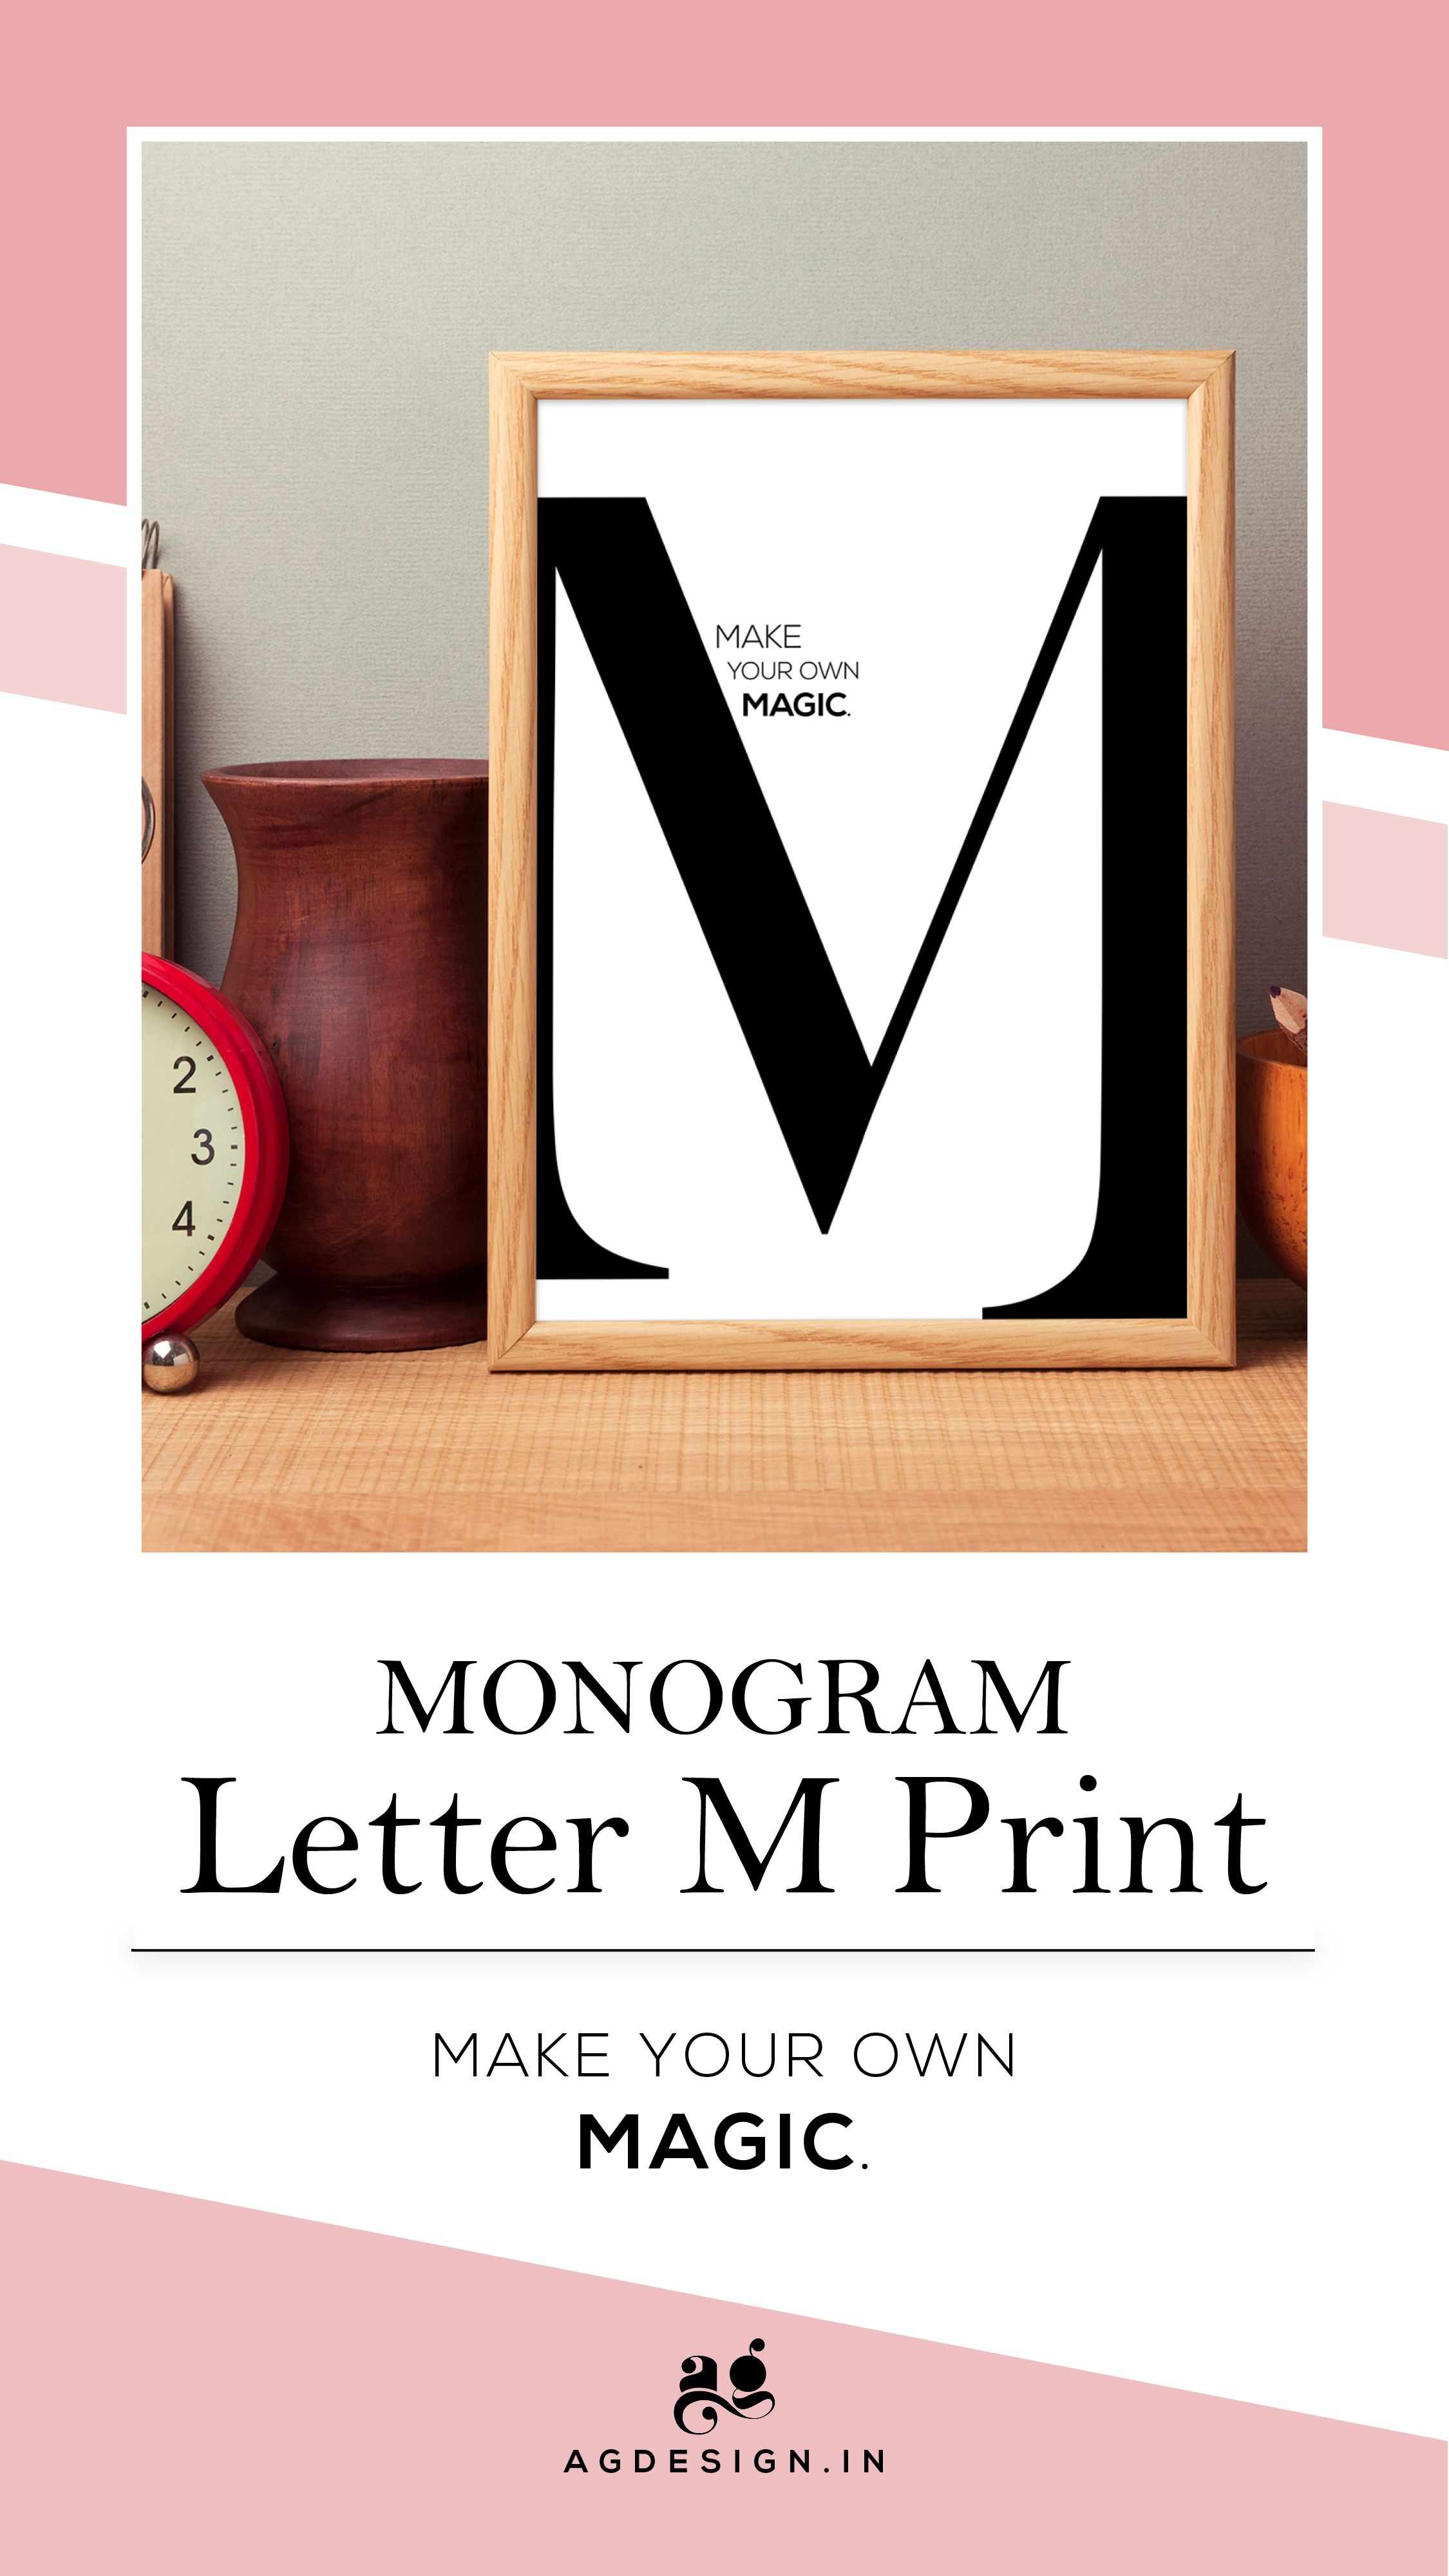 Monogram Letter M Poster Set Of 2 Make Your Own Magic Printable Quote First Name Initial Print Girl Room Wall Art Decor Gift For Him Her Lettering Monogram Letters Monogram Printable